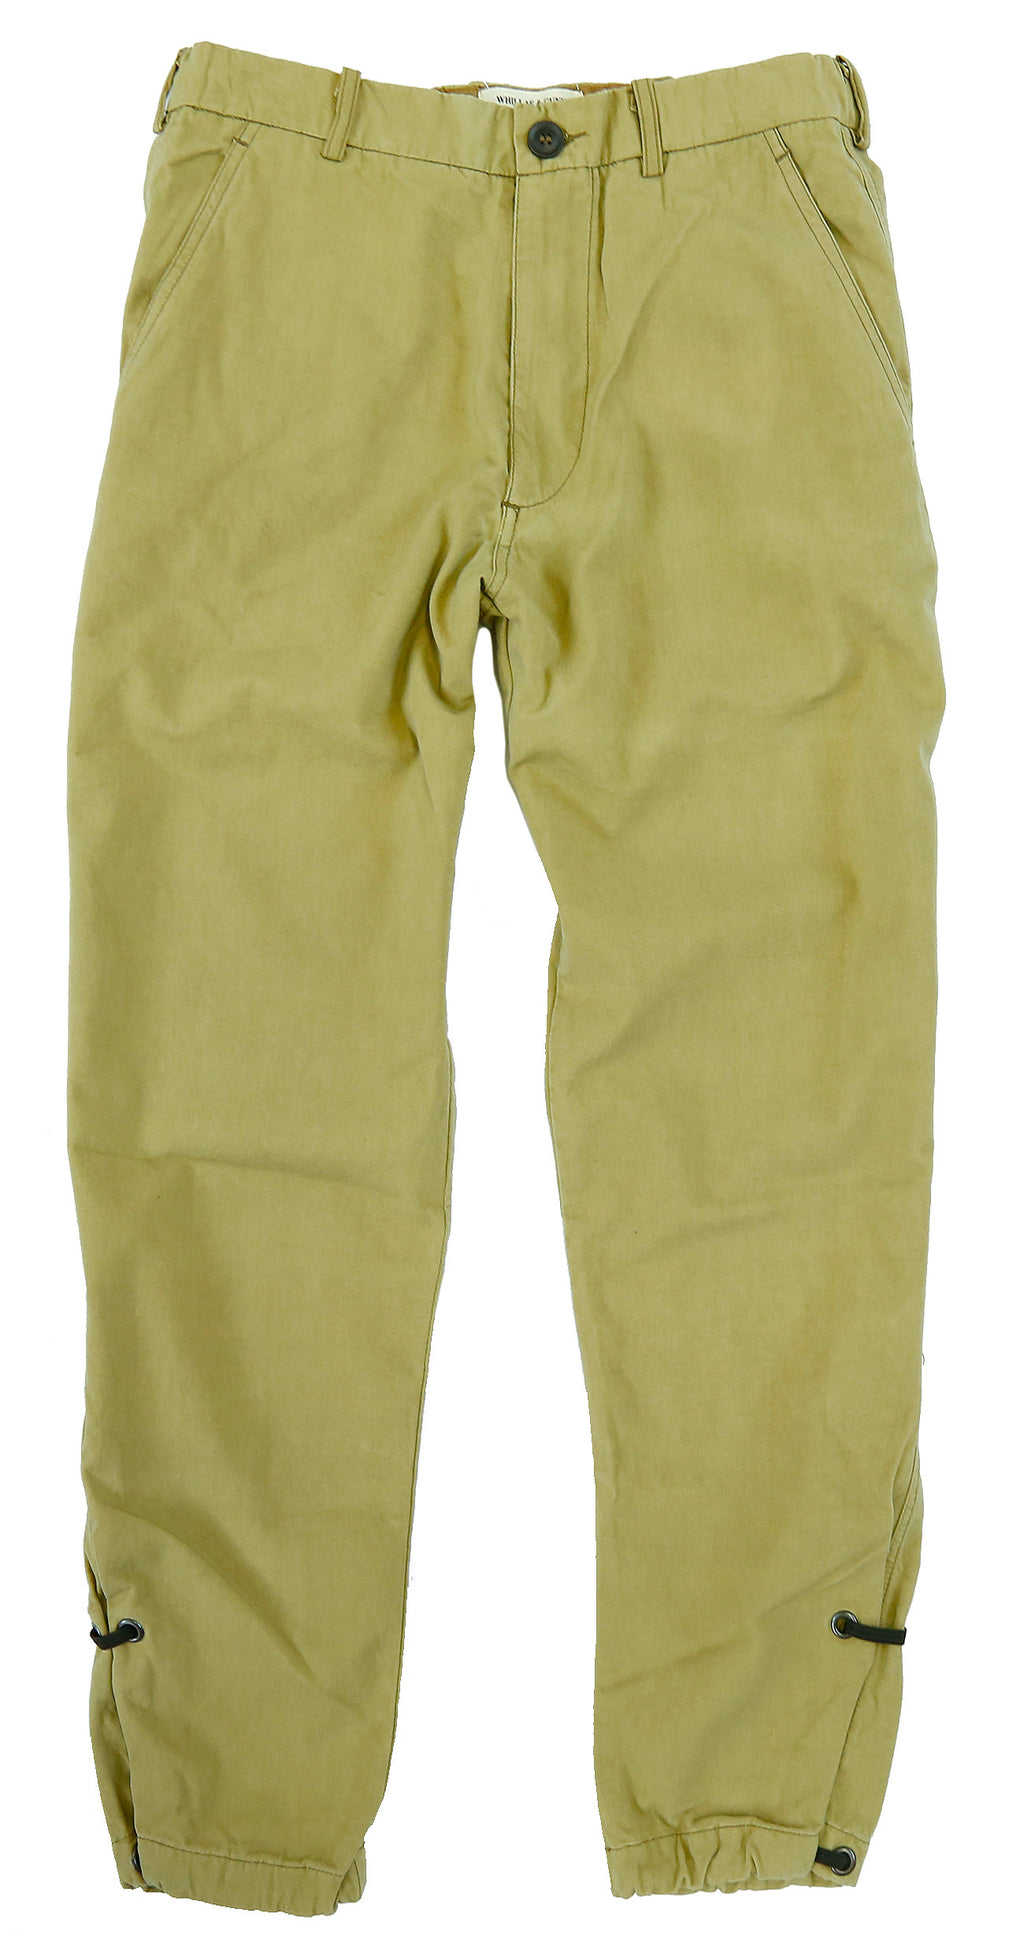 Leisure | Outdoor | Chino Hose Trail- with flexible waistband and leg closure - OUT OF AUSTRALIA | Kakadu Traders Australia